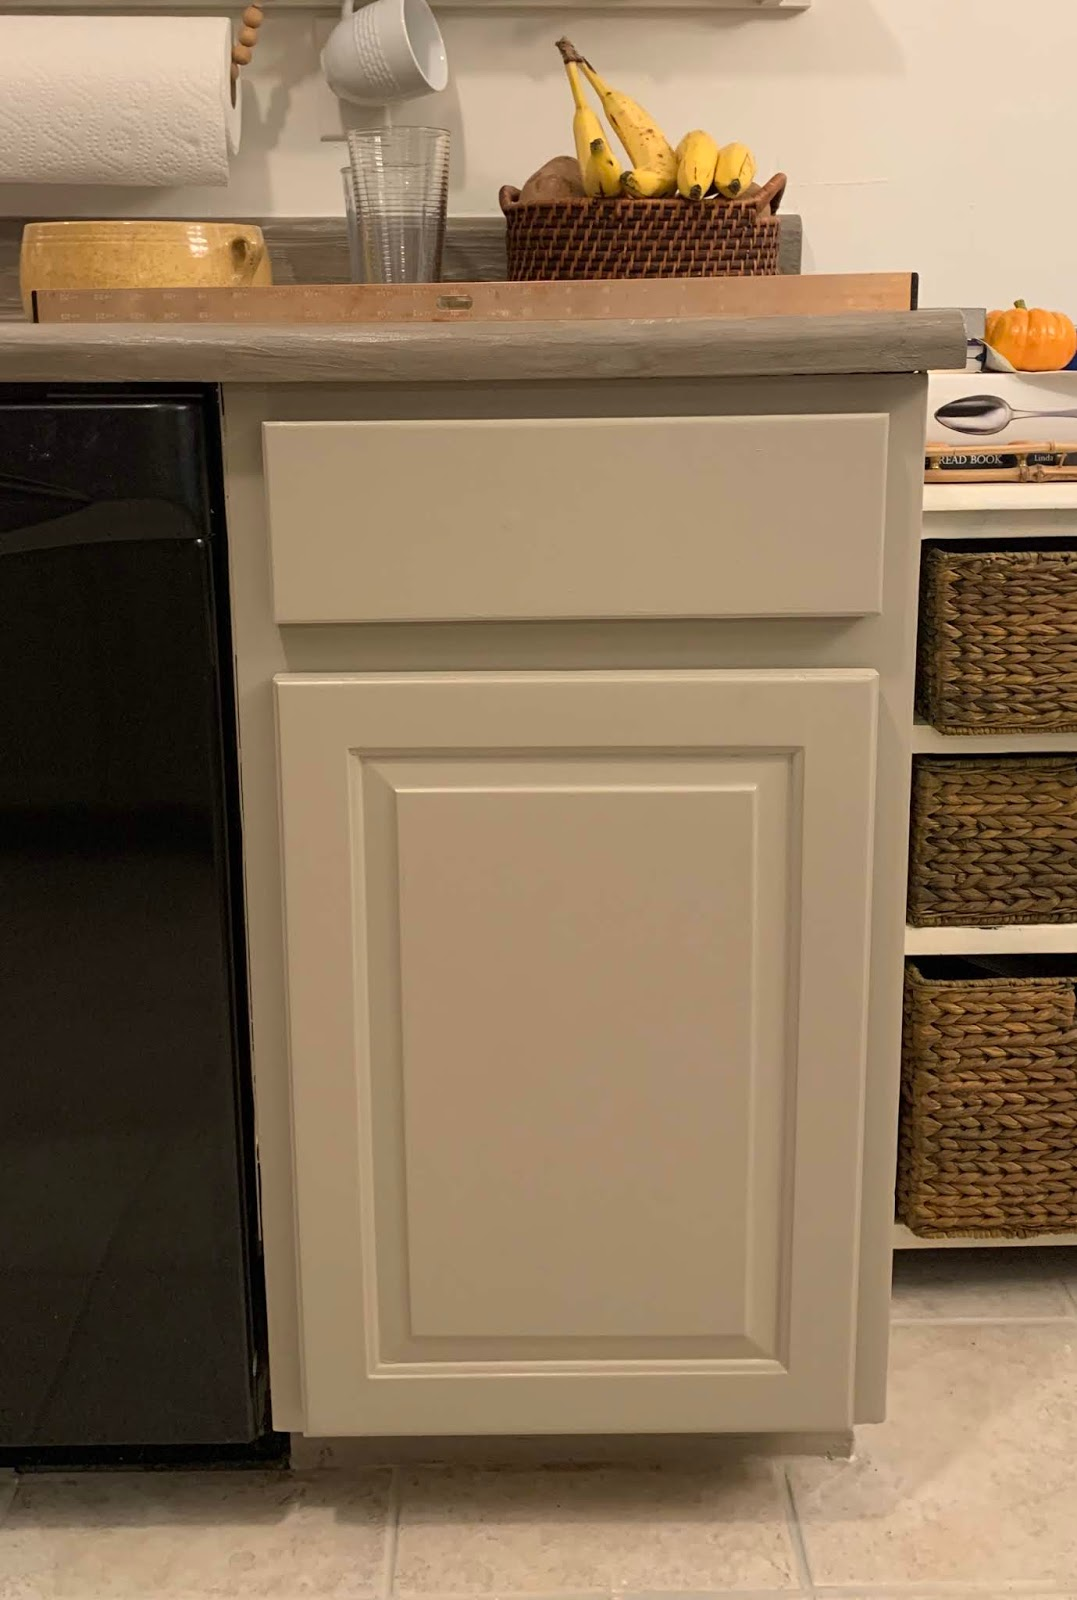 update old outdated cabinet doors to a modern style | House Homemade